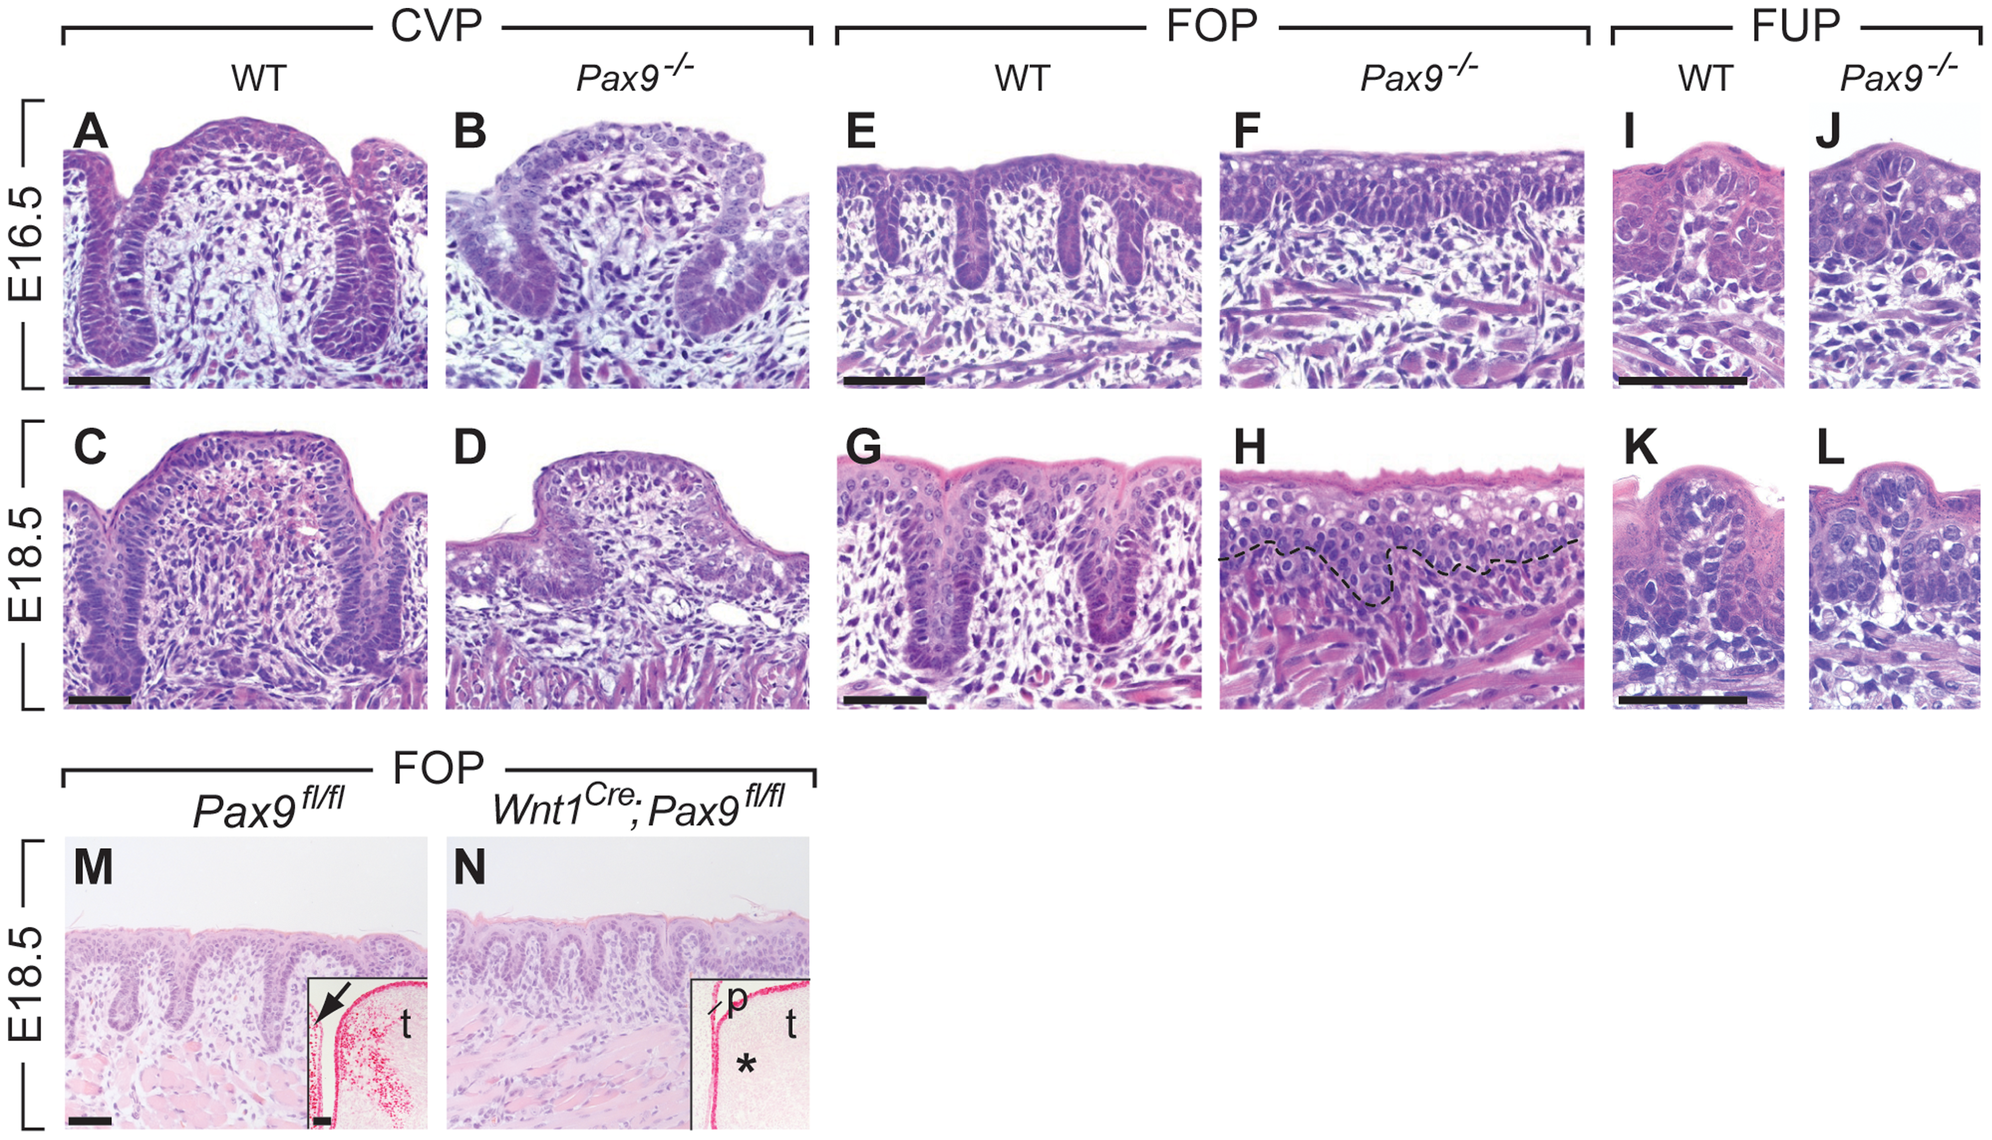 Arrest of CVP and FOP development in <i>Pax9</i>-deficient mouse embryos.